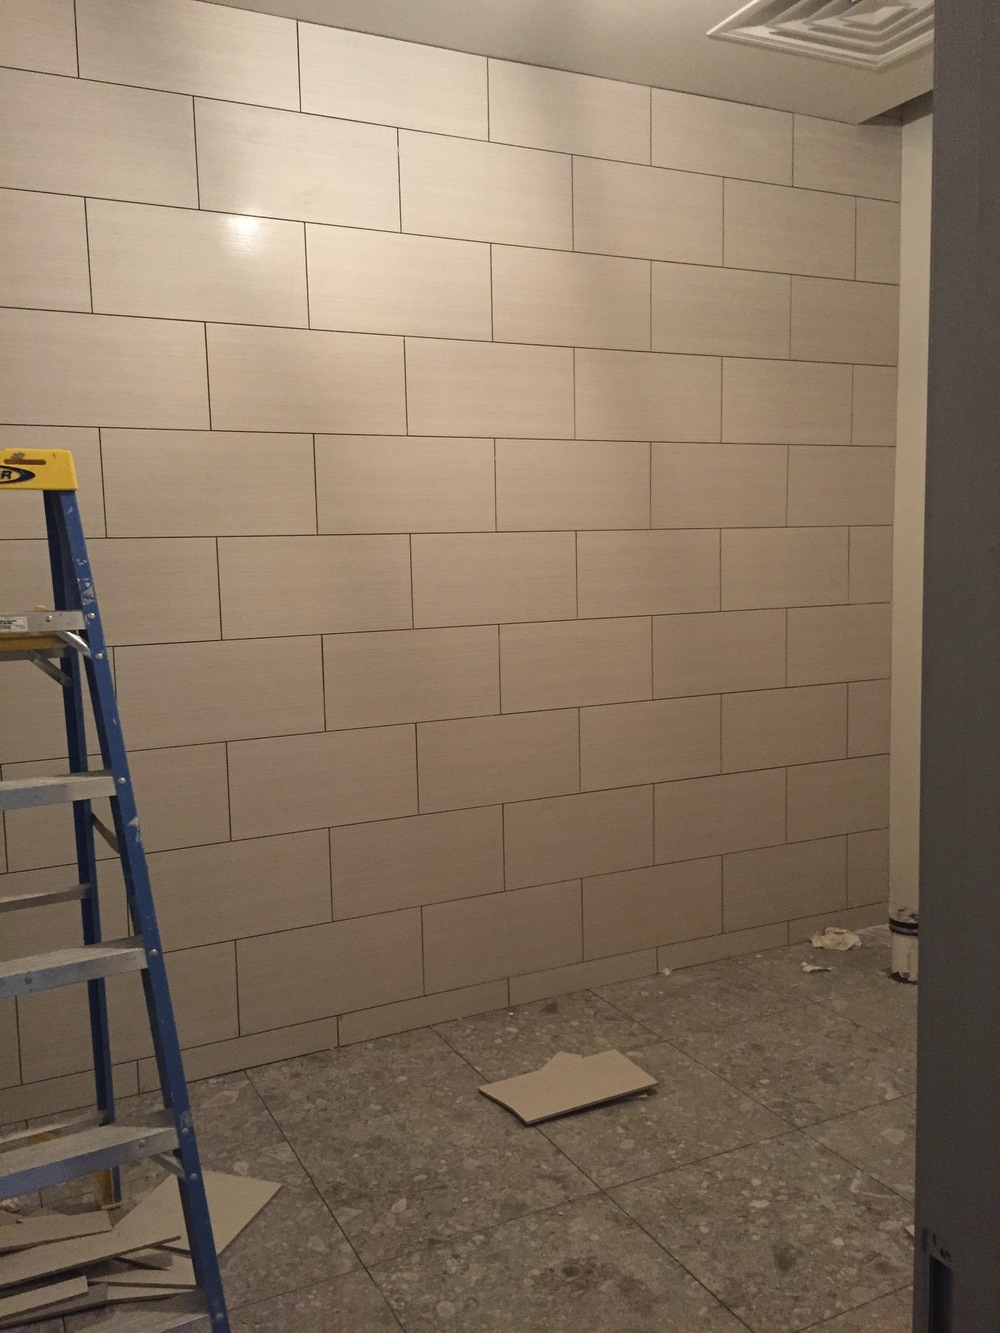 Bathrooms are getting tiles